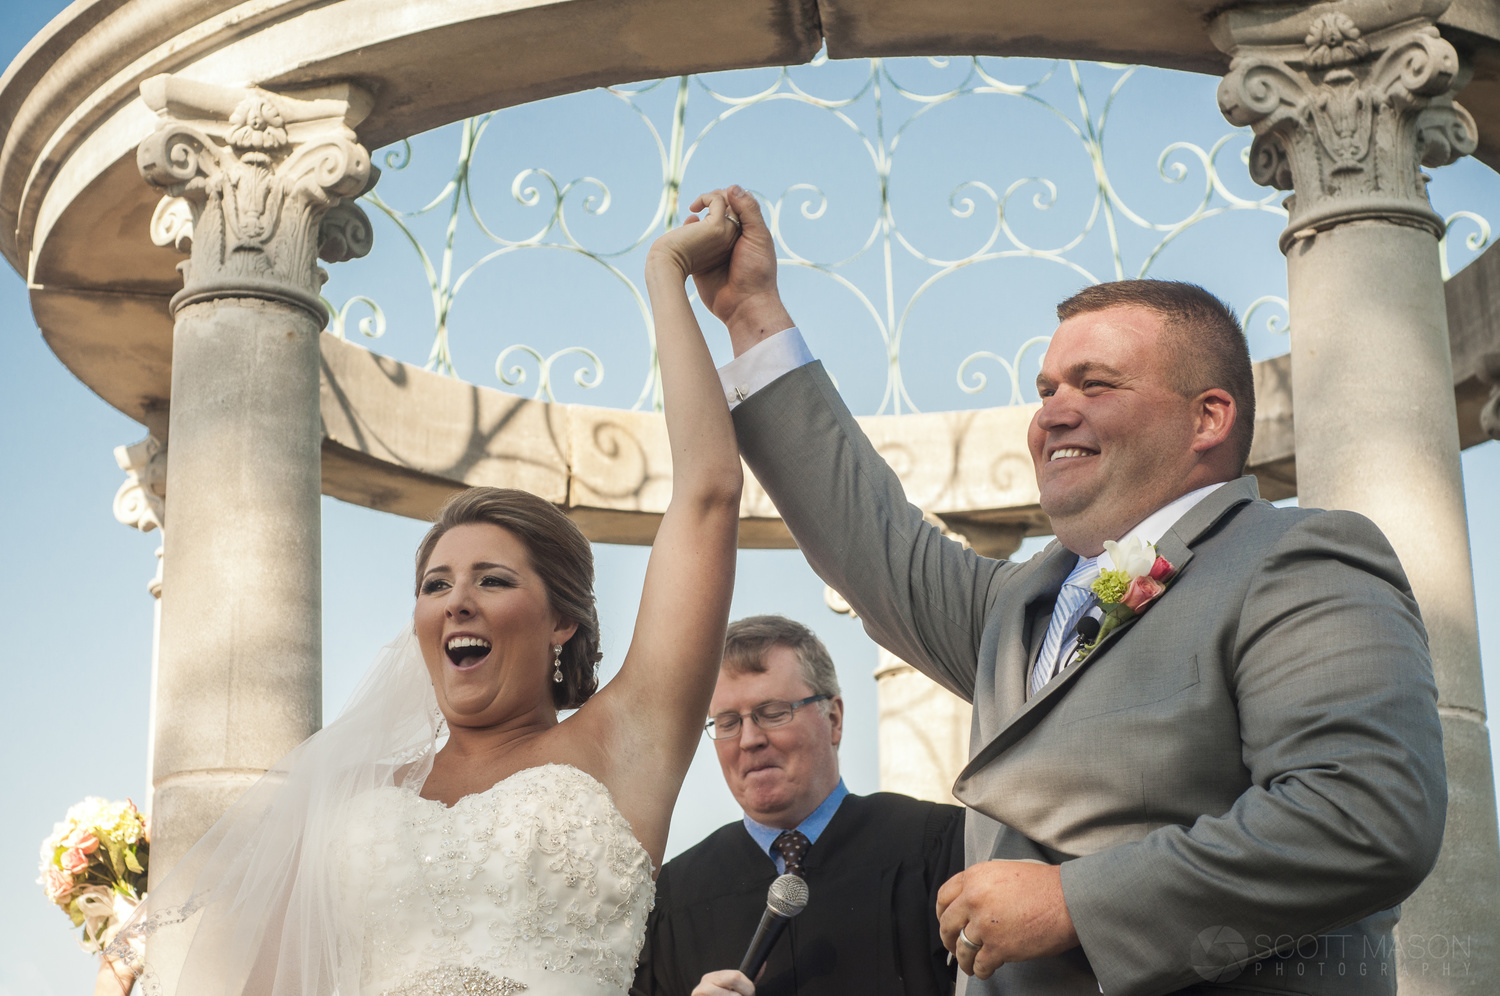 a couple at a wedding ceremony with their arms raised